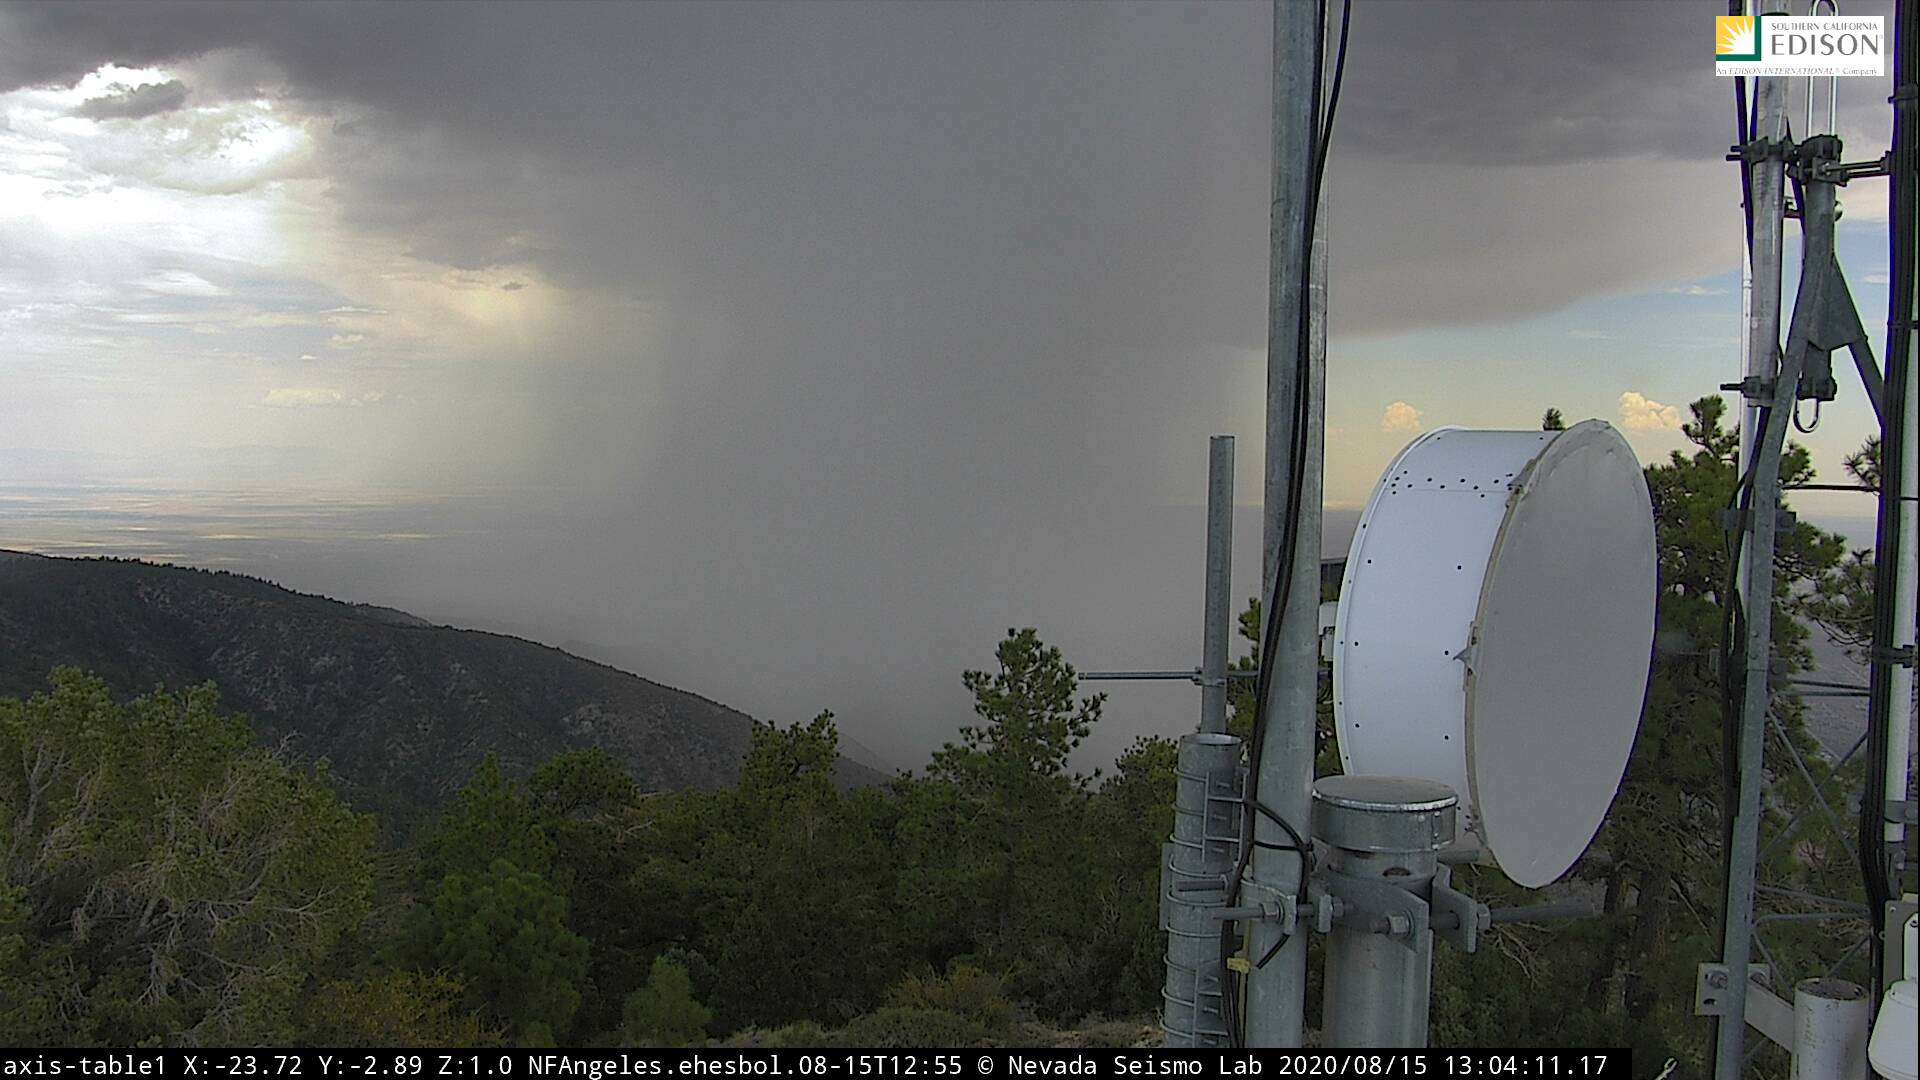 View of heavy rain producing thunderstorm near Llano in the Antelope Valley on Aug. 15, 2020. (SoCal Edison via NWS)